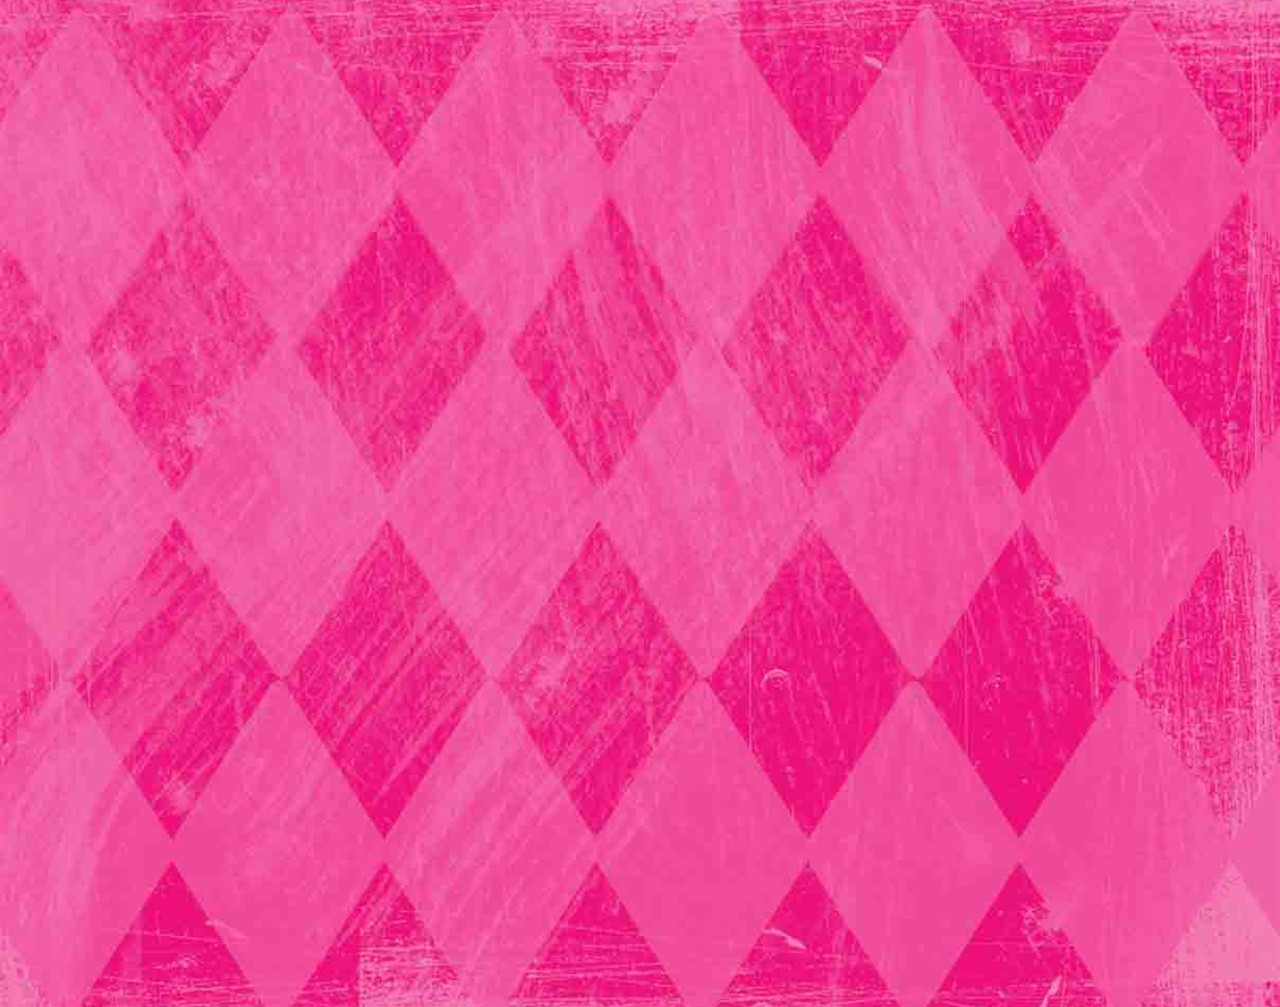 Pink Diamonds Backgrounds